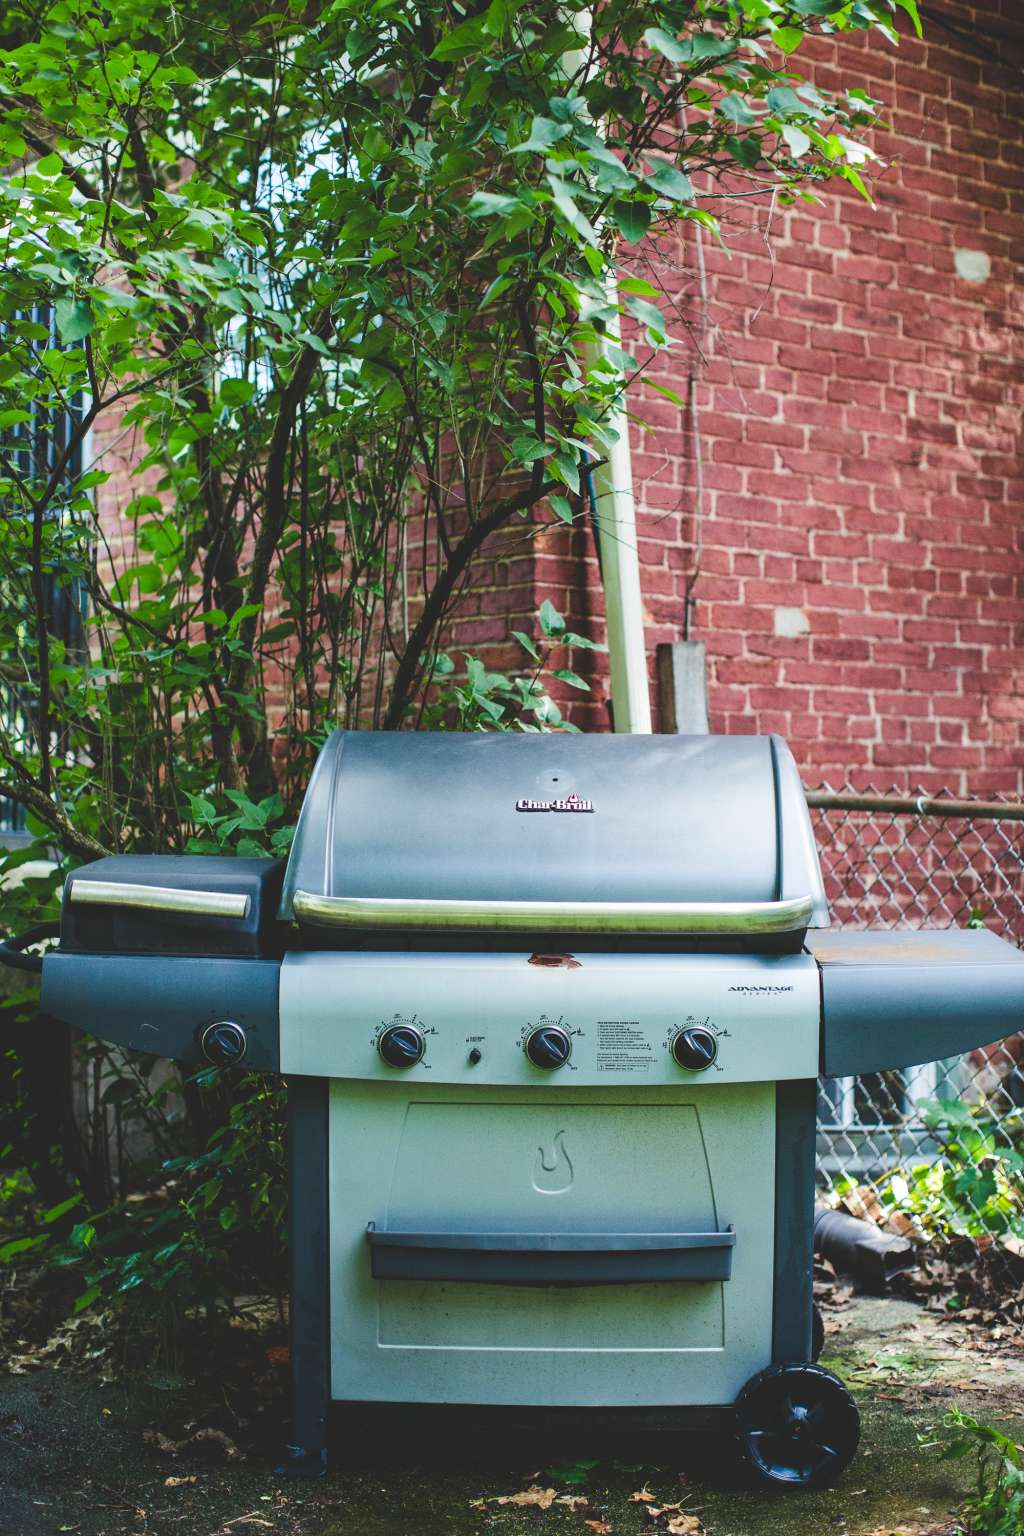 5 Mistakes to Avoid When Using a Gas Grill